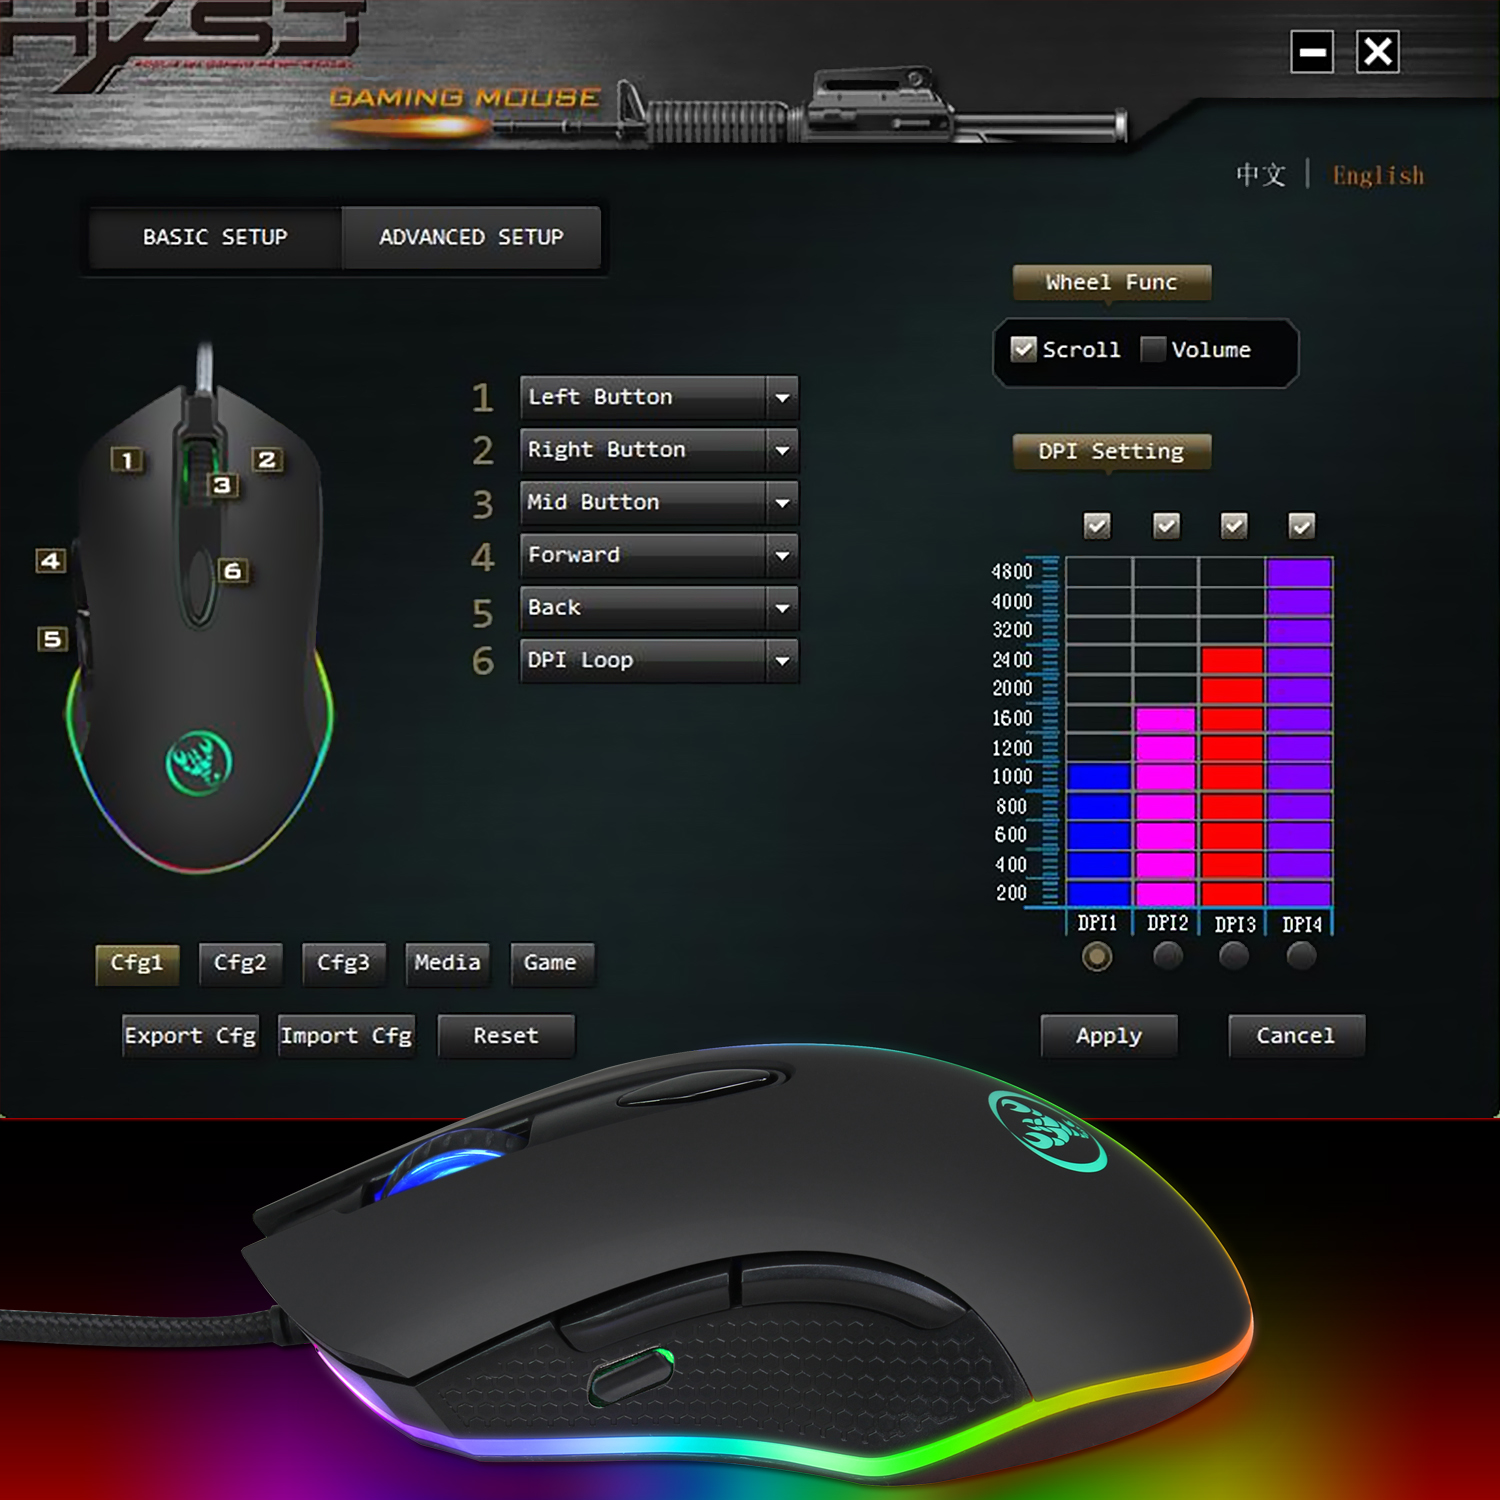 Image 5 - HXSJ USB wired mouse Ergonomics Mechanical macro definition game mice 6 key 12 level adjustable DPI Max 4800 DPI For game player-in Mice from Computer & Office